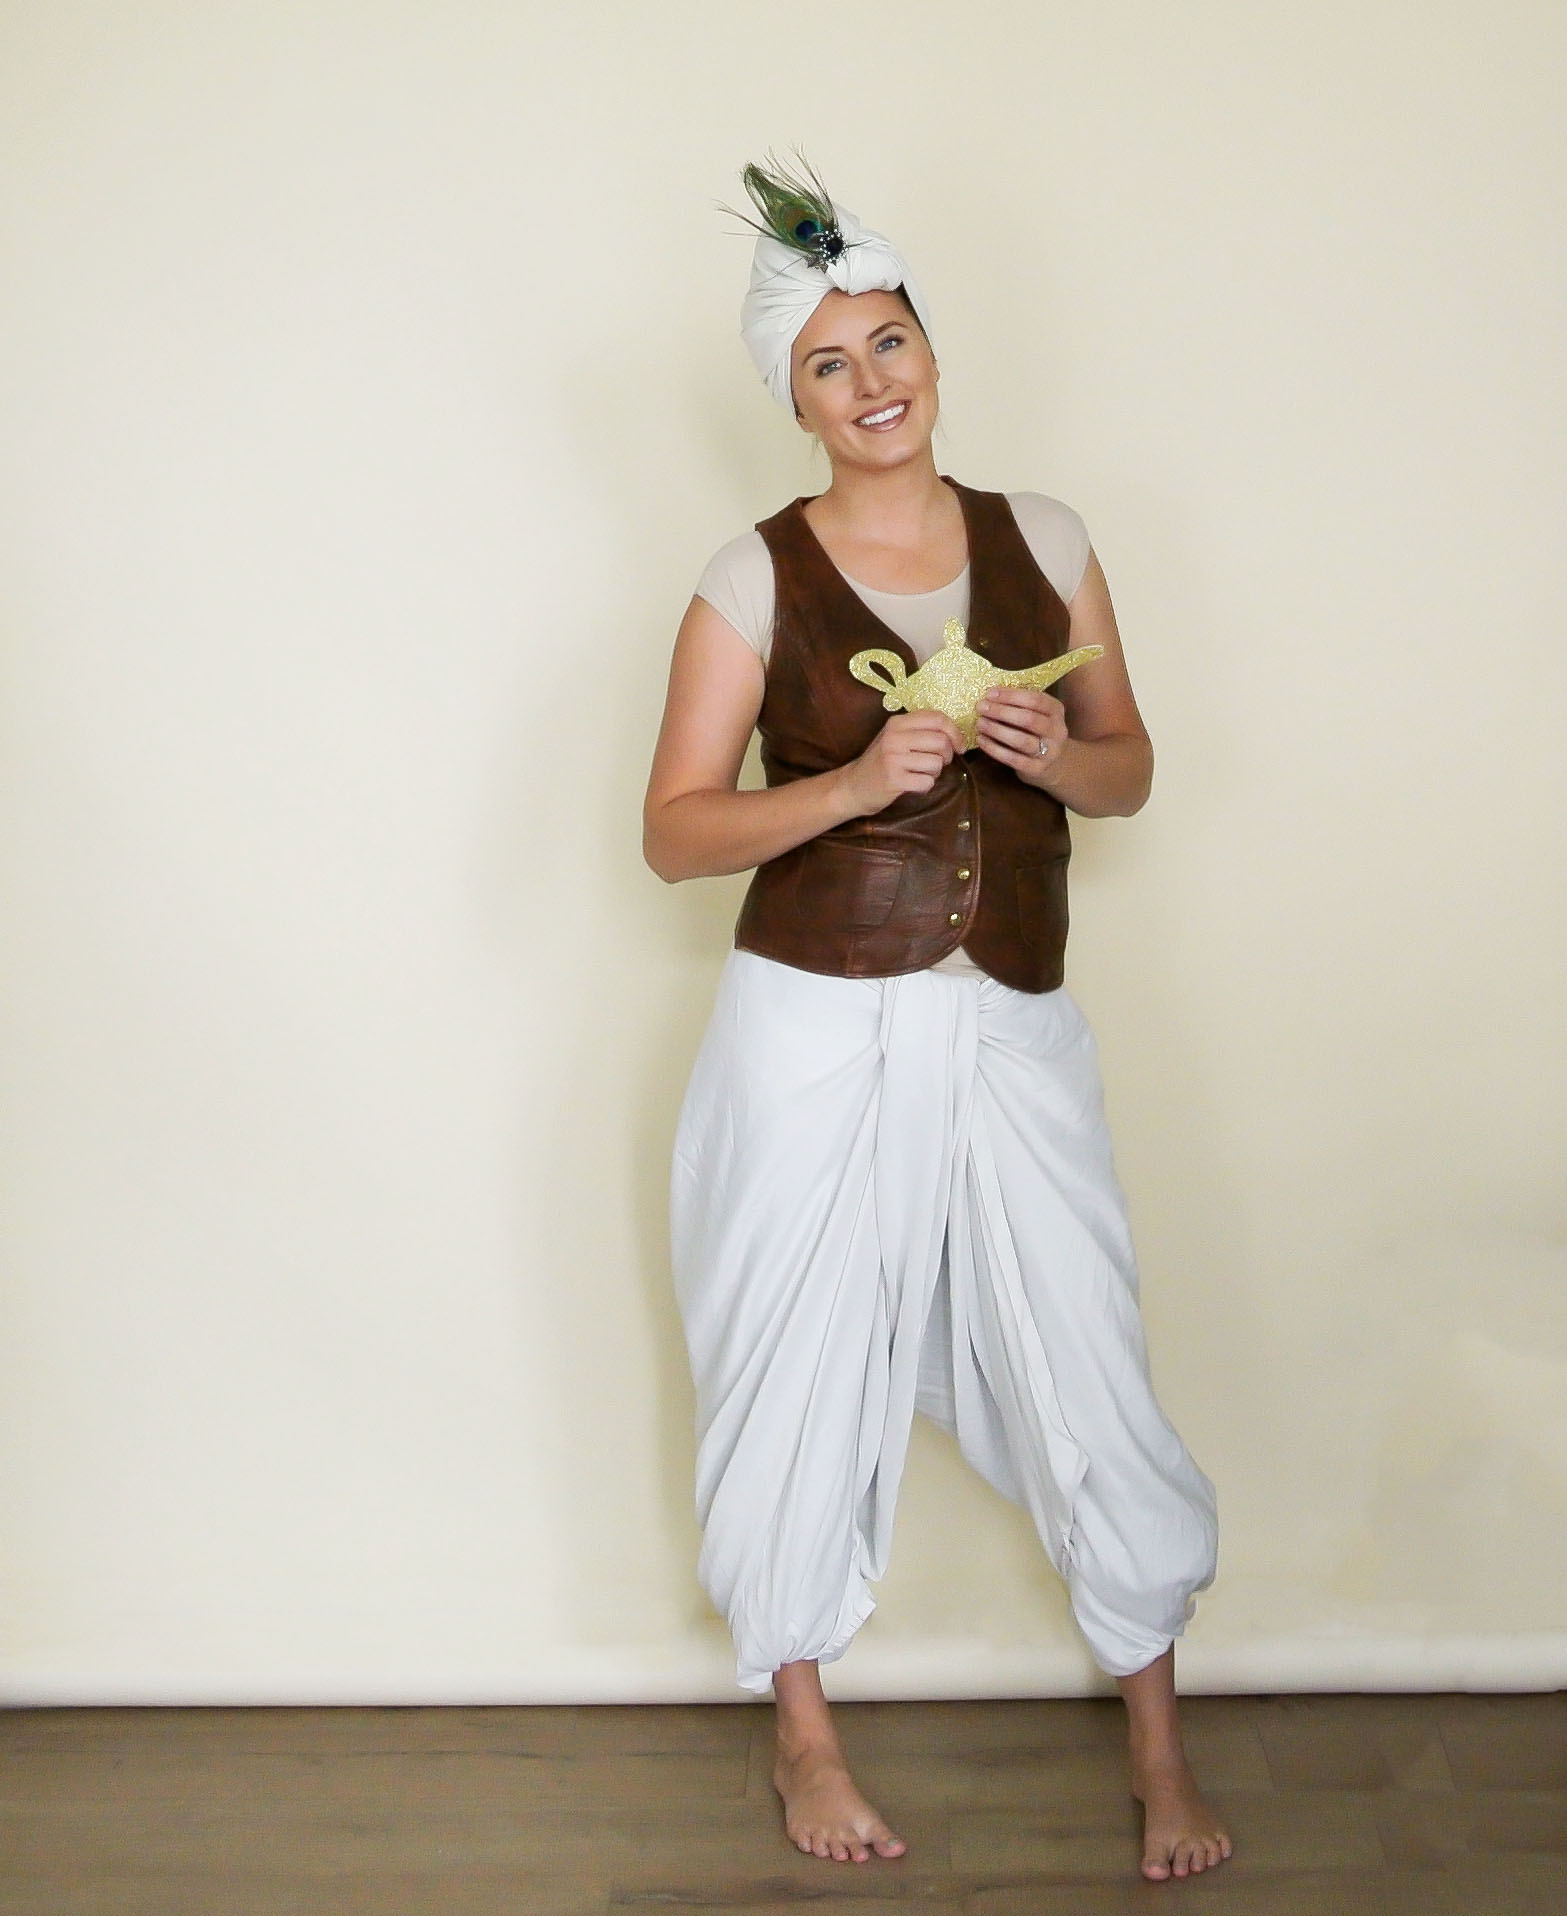 Super Creative Costumes made from sheets. The pants are made from a flat queen sheet, and the turban is a pillowcase! #diycostume #diyhalloween #homemadecostume #geniecostume